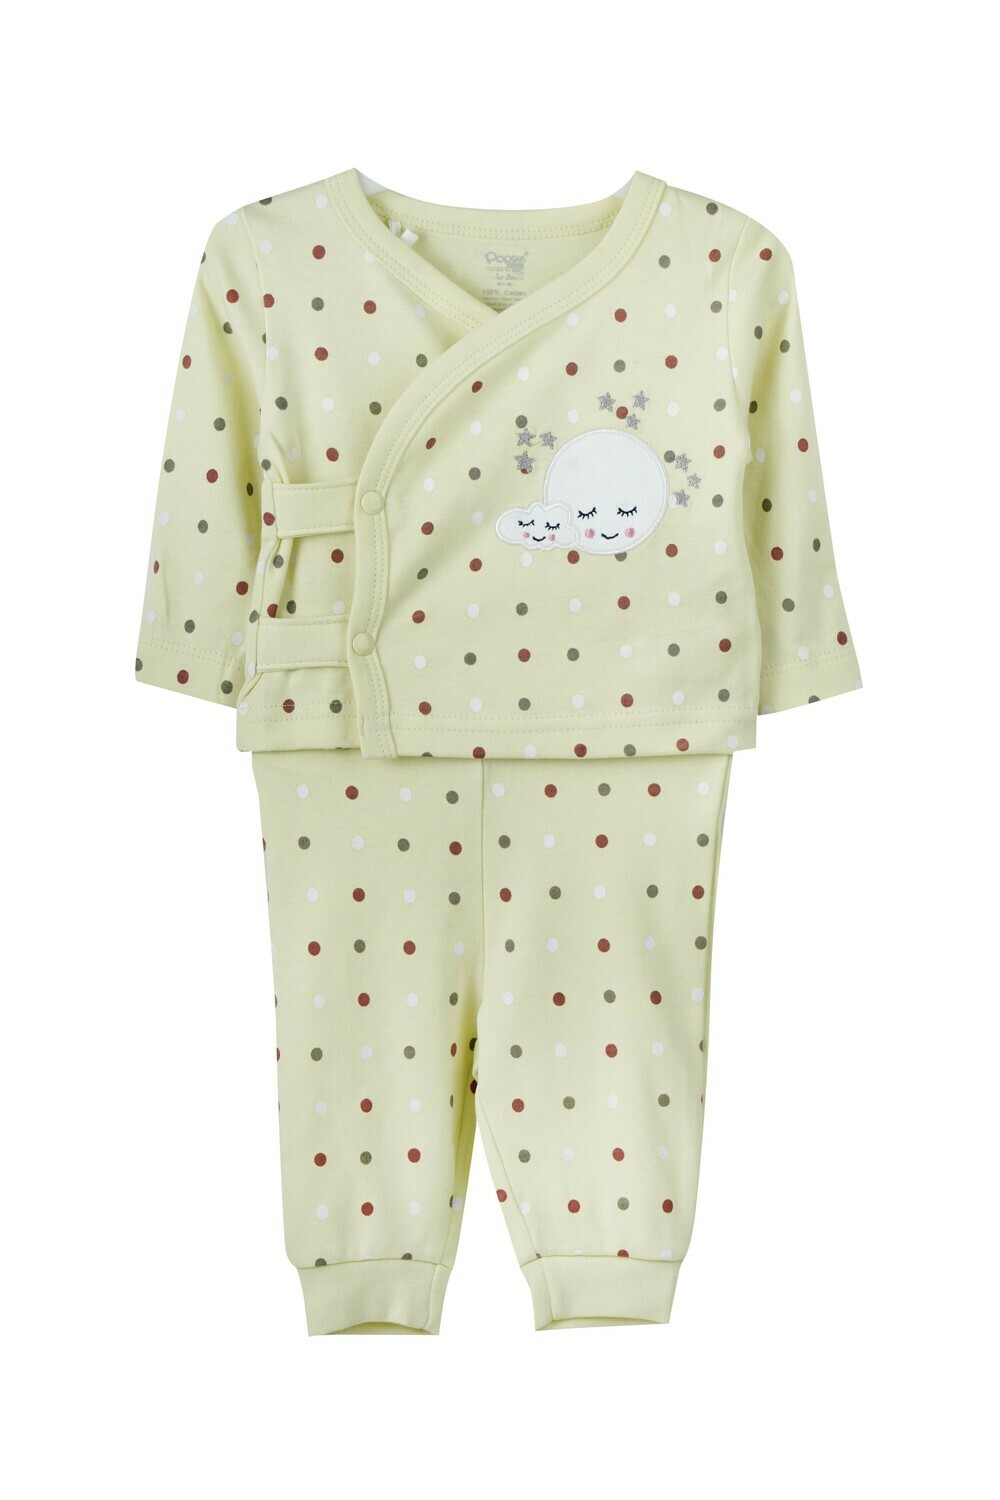 LIONEL Young Wheat Top & Bottom Top/Pant Full Sleeve Front Open Interlock BOYS